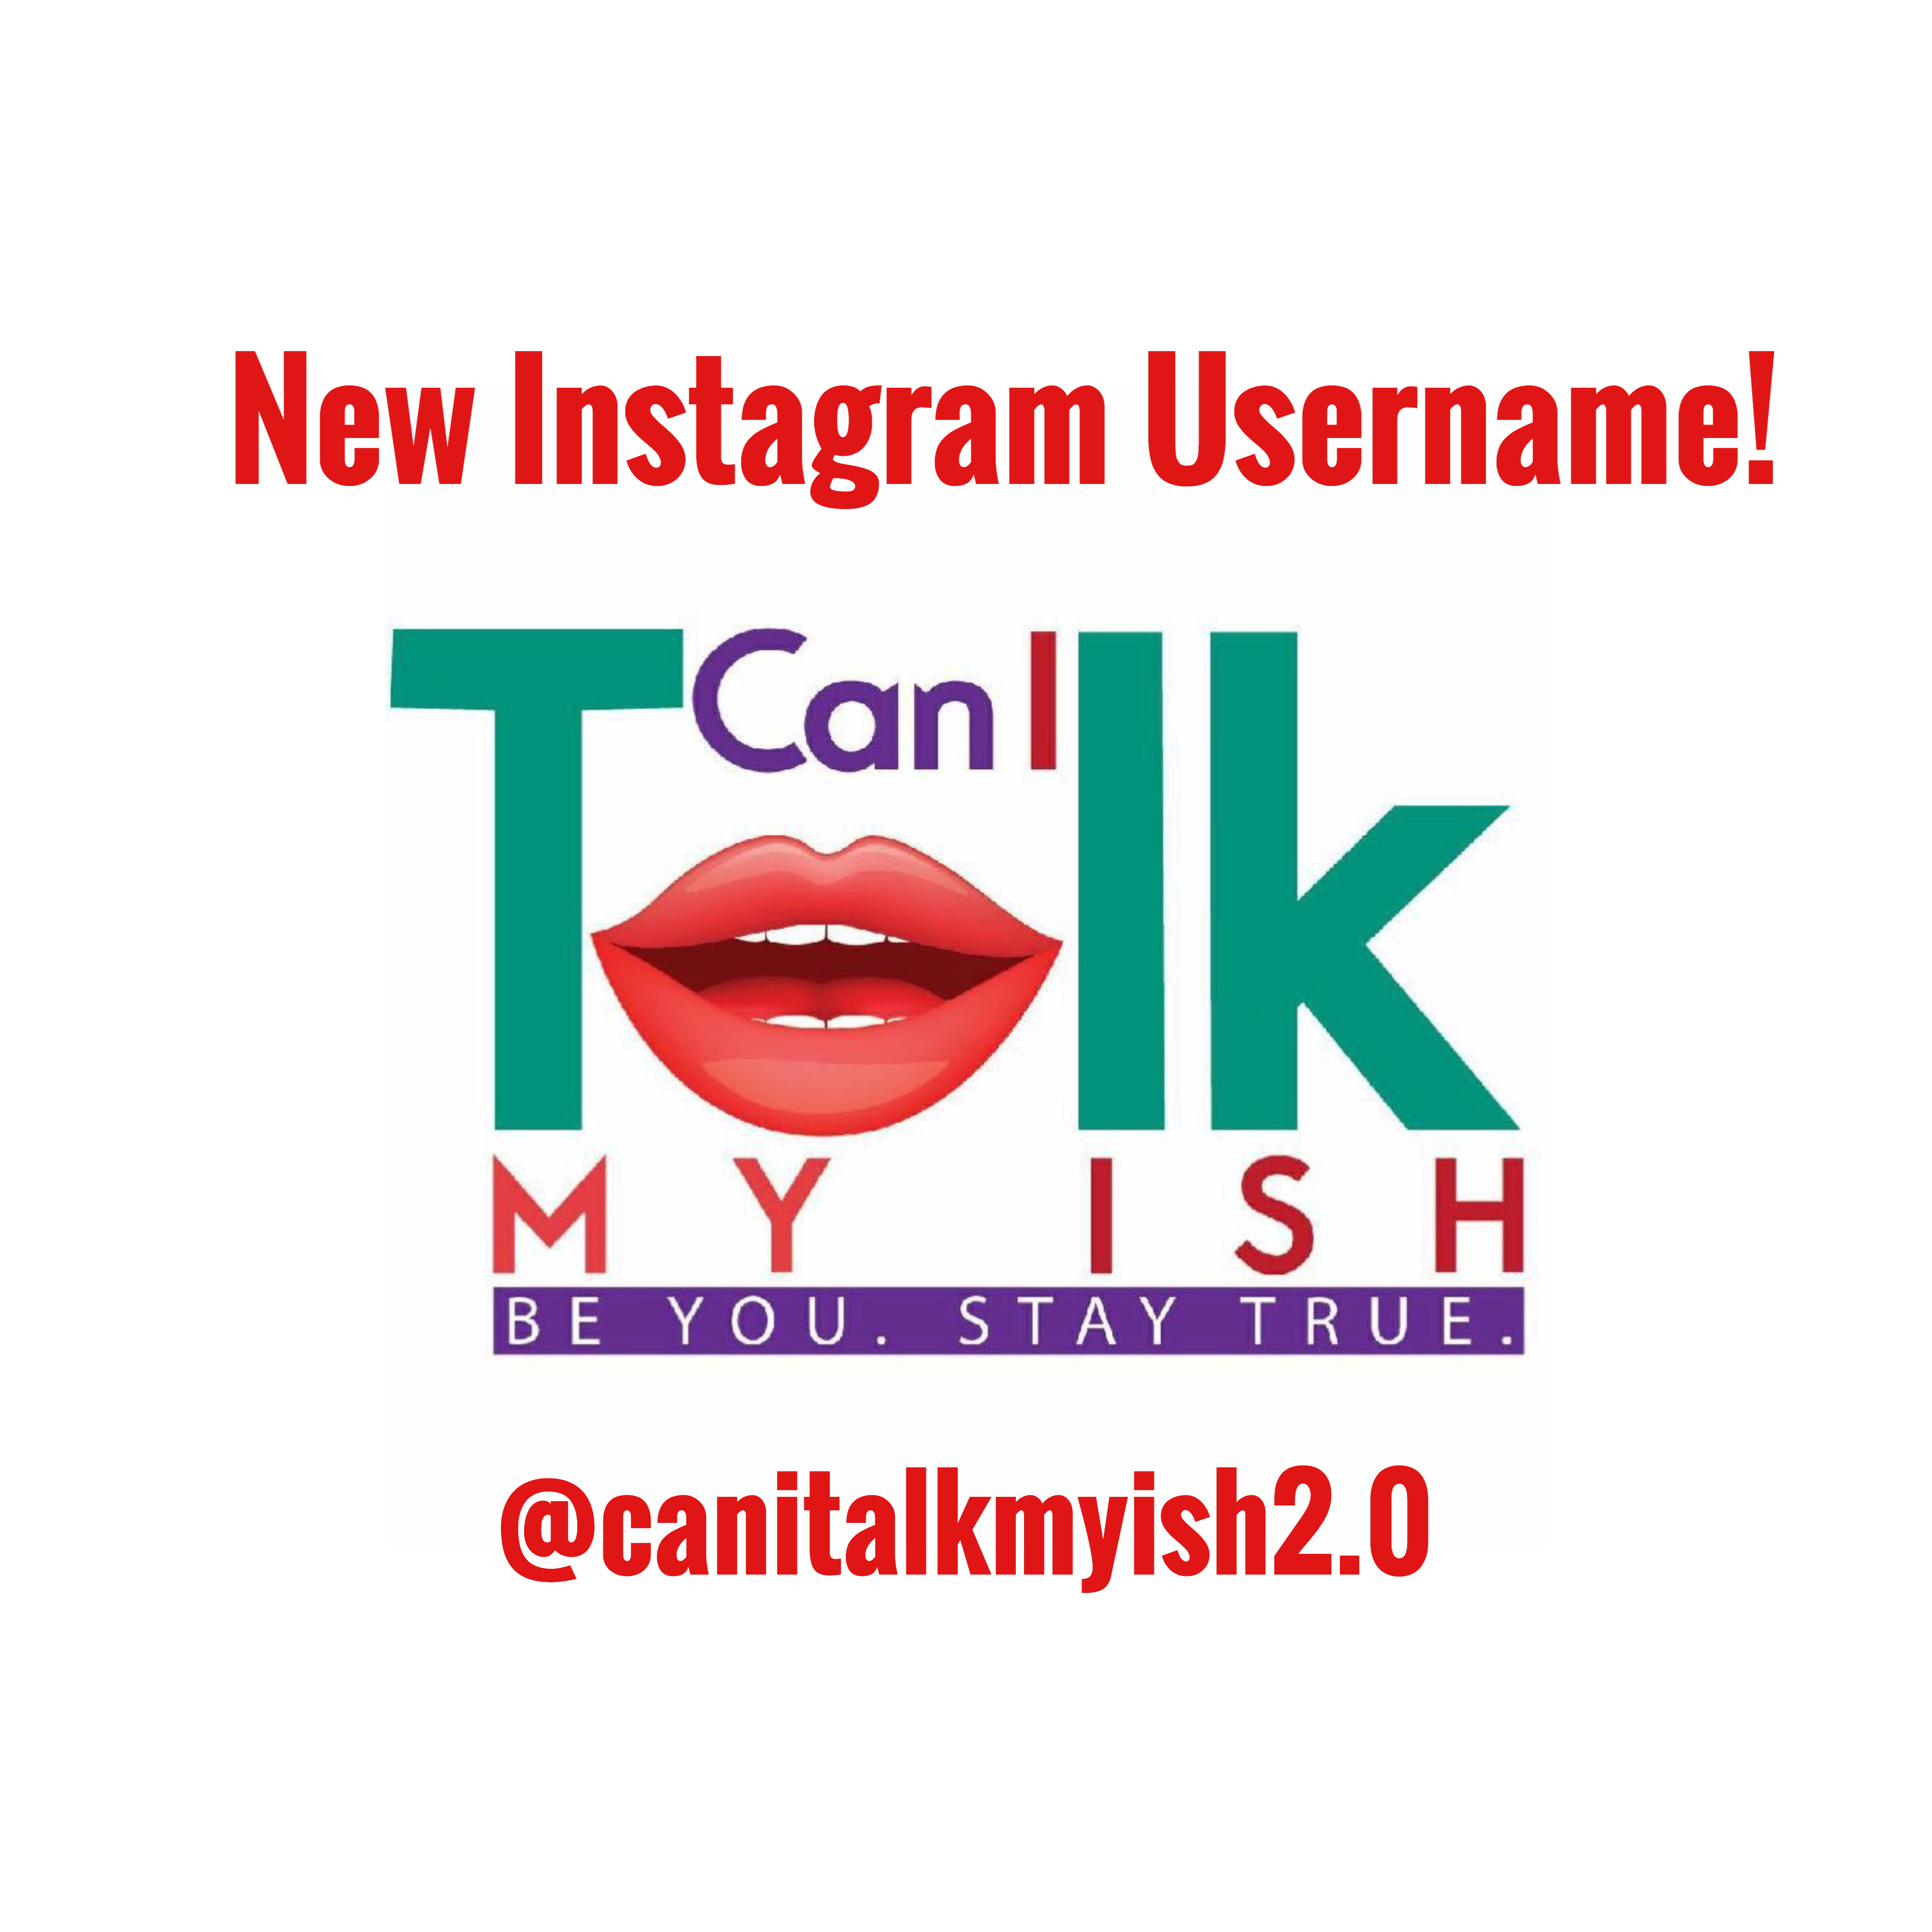 New Instagram Username Alert! | Can I Talk My Ish